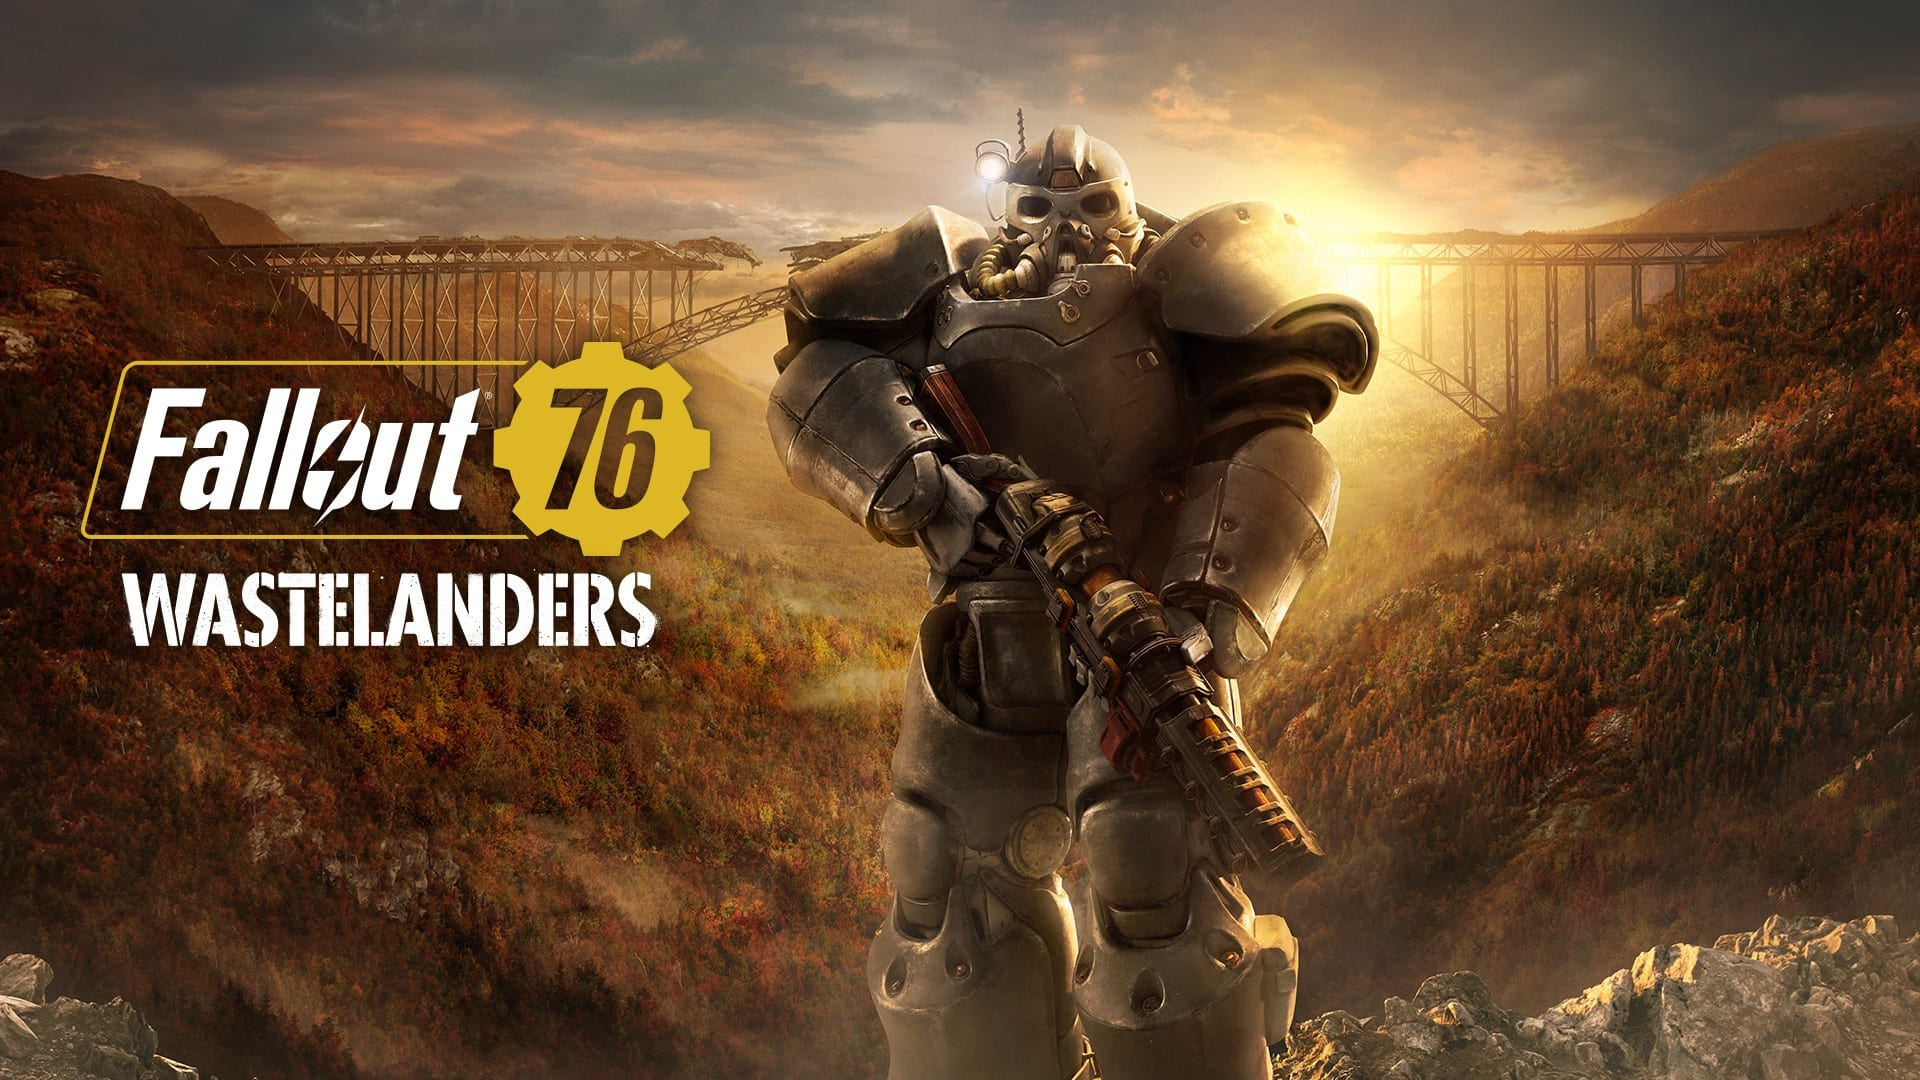 Fallout 76: Wastelanders Available Now